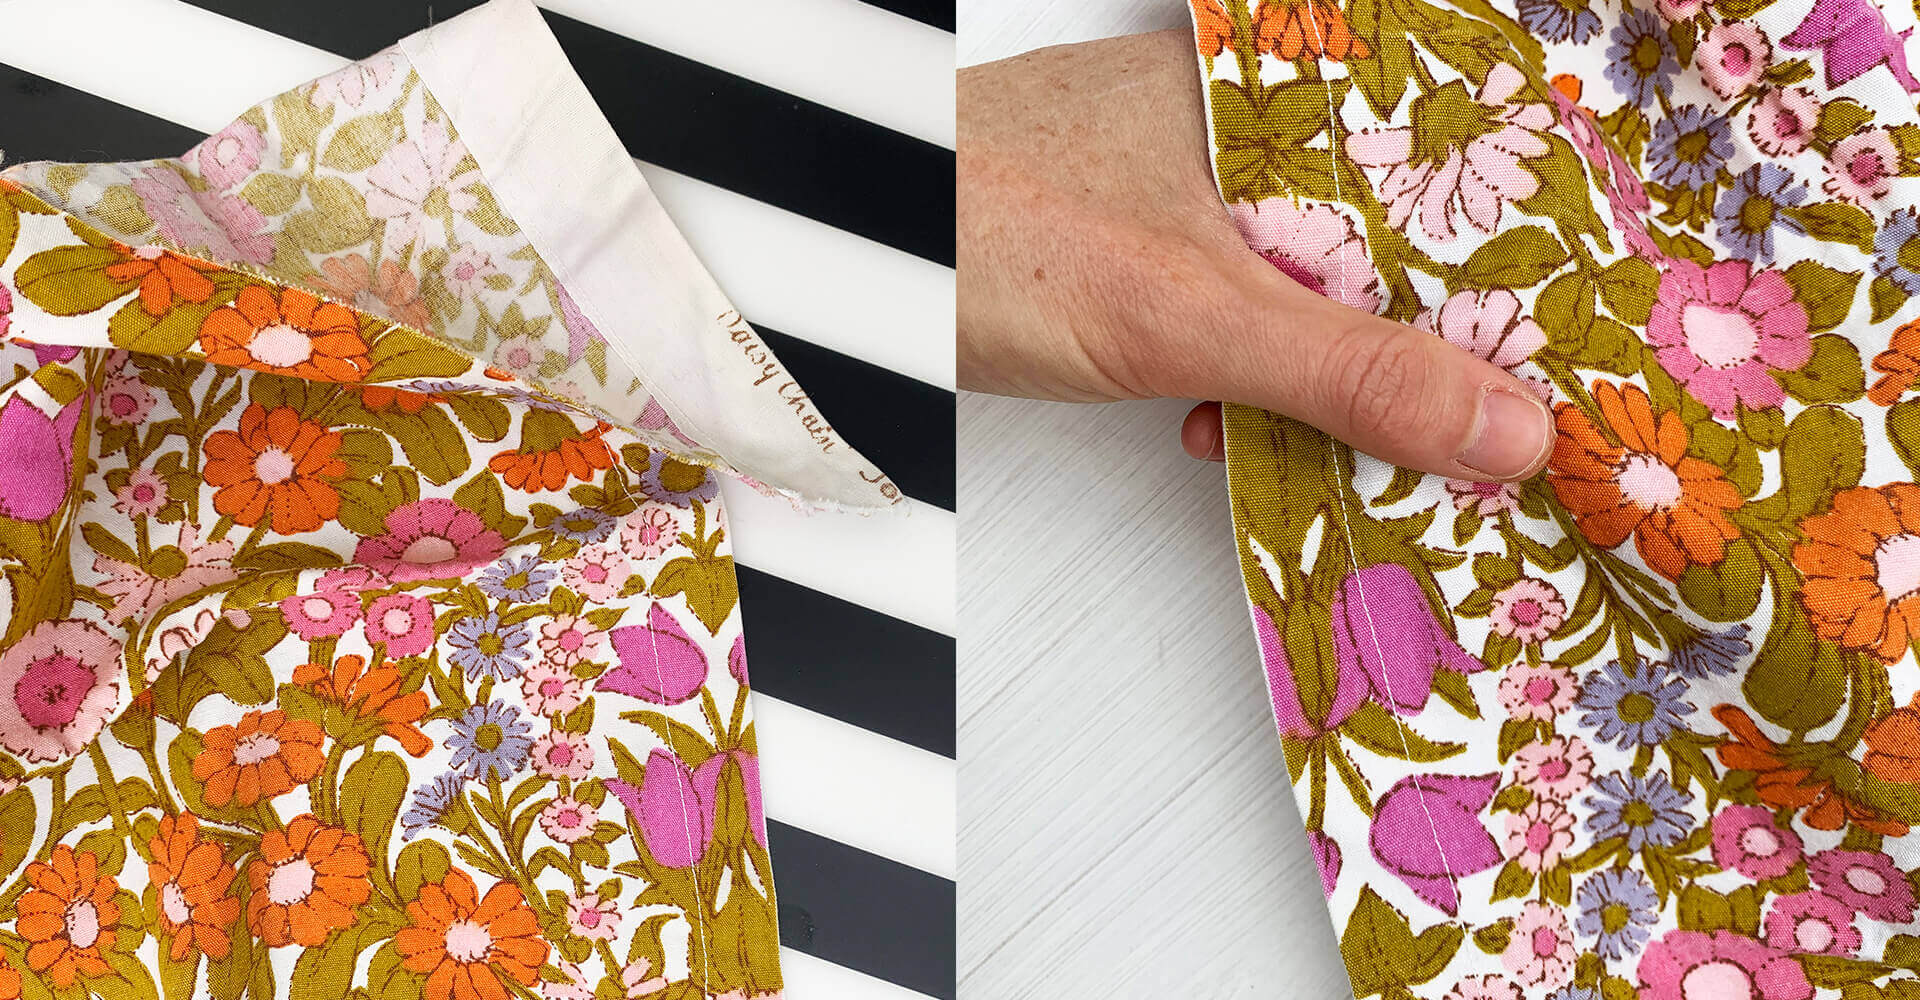 A close up of some retro floral print fabric, seen on the left hand side of the image against a black and white boldly striped background, and on the right hand side of the image being held by a white woman's hand to show the scale of the print.